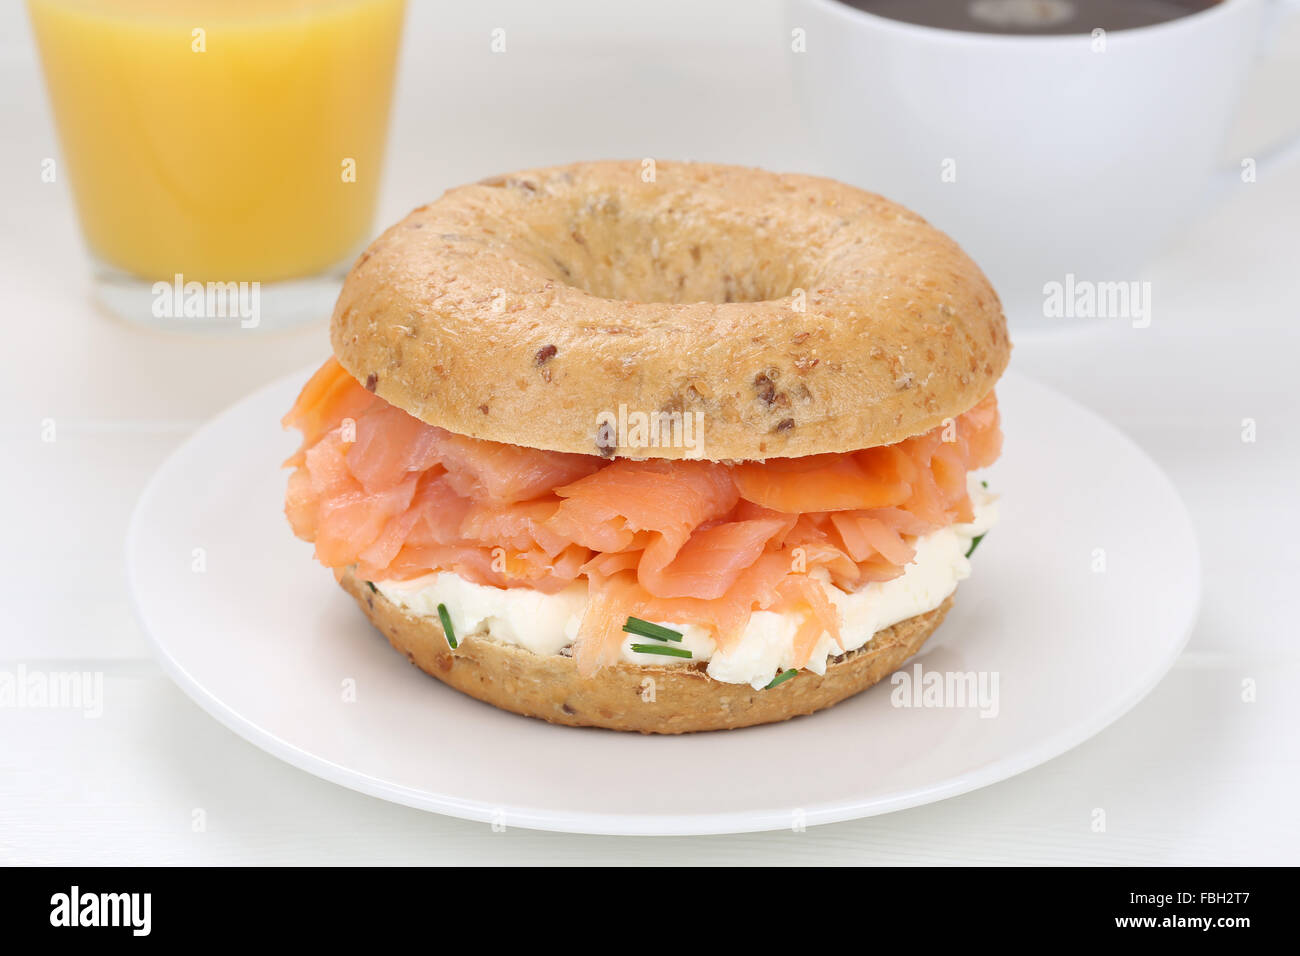 Bagel sandwich for breakfast with salmon fish, cream cheese, orange juice and coffee - Stock Image